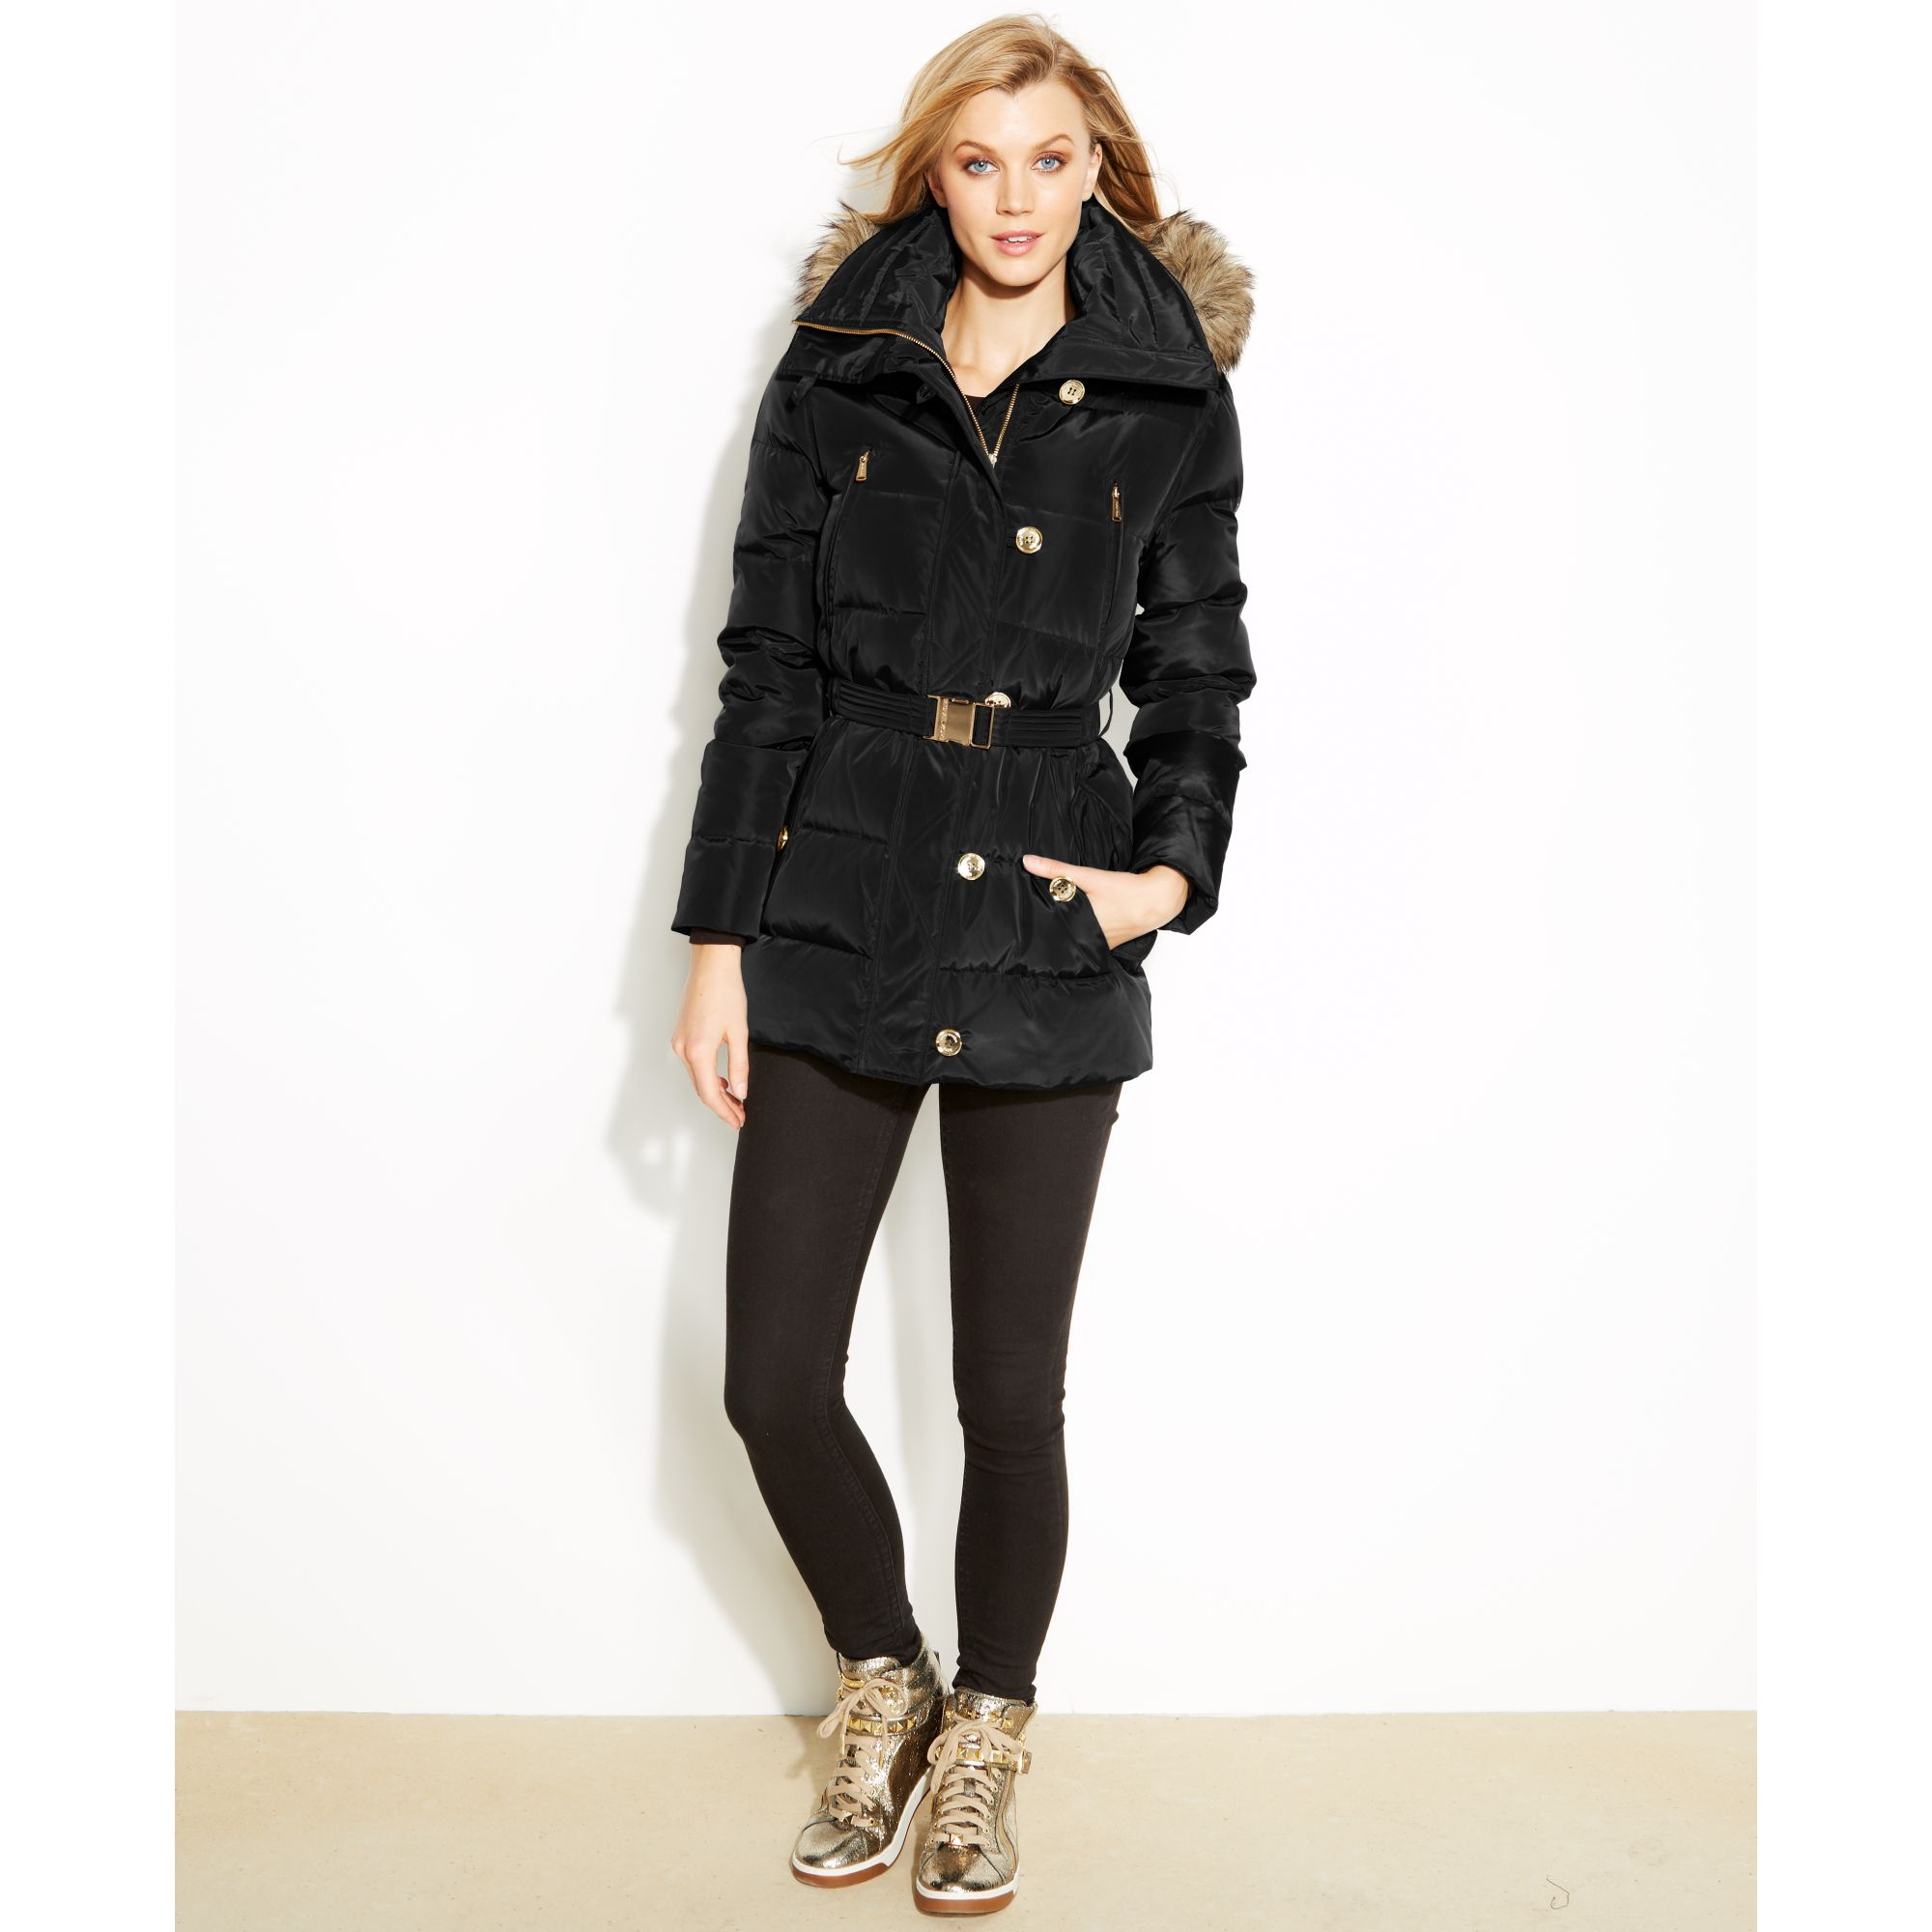 Michael kors Hooded Faux-furtrim Quilted Belted Puffer in Black | Lyst : quilted belted coat - Adamdwight.com